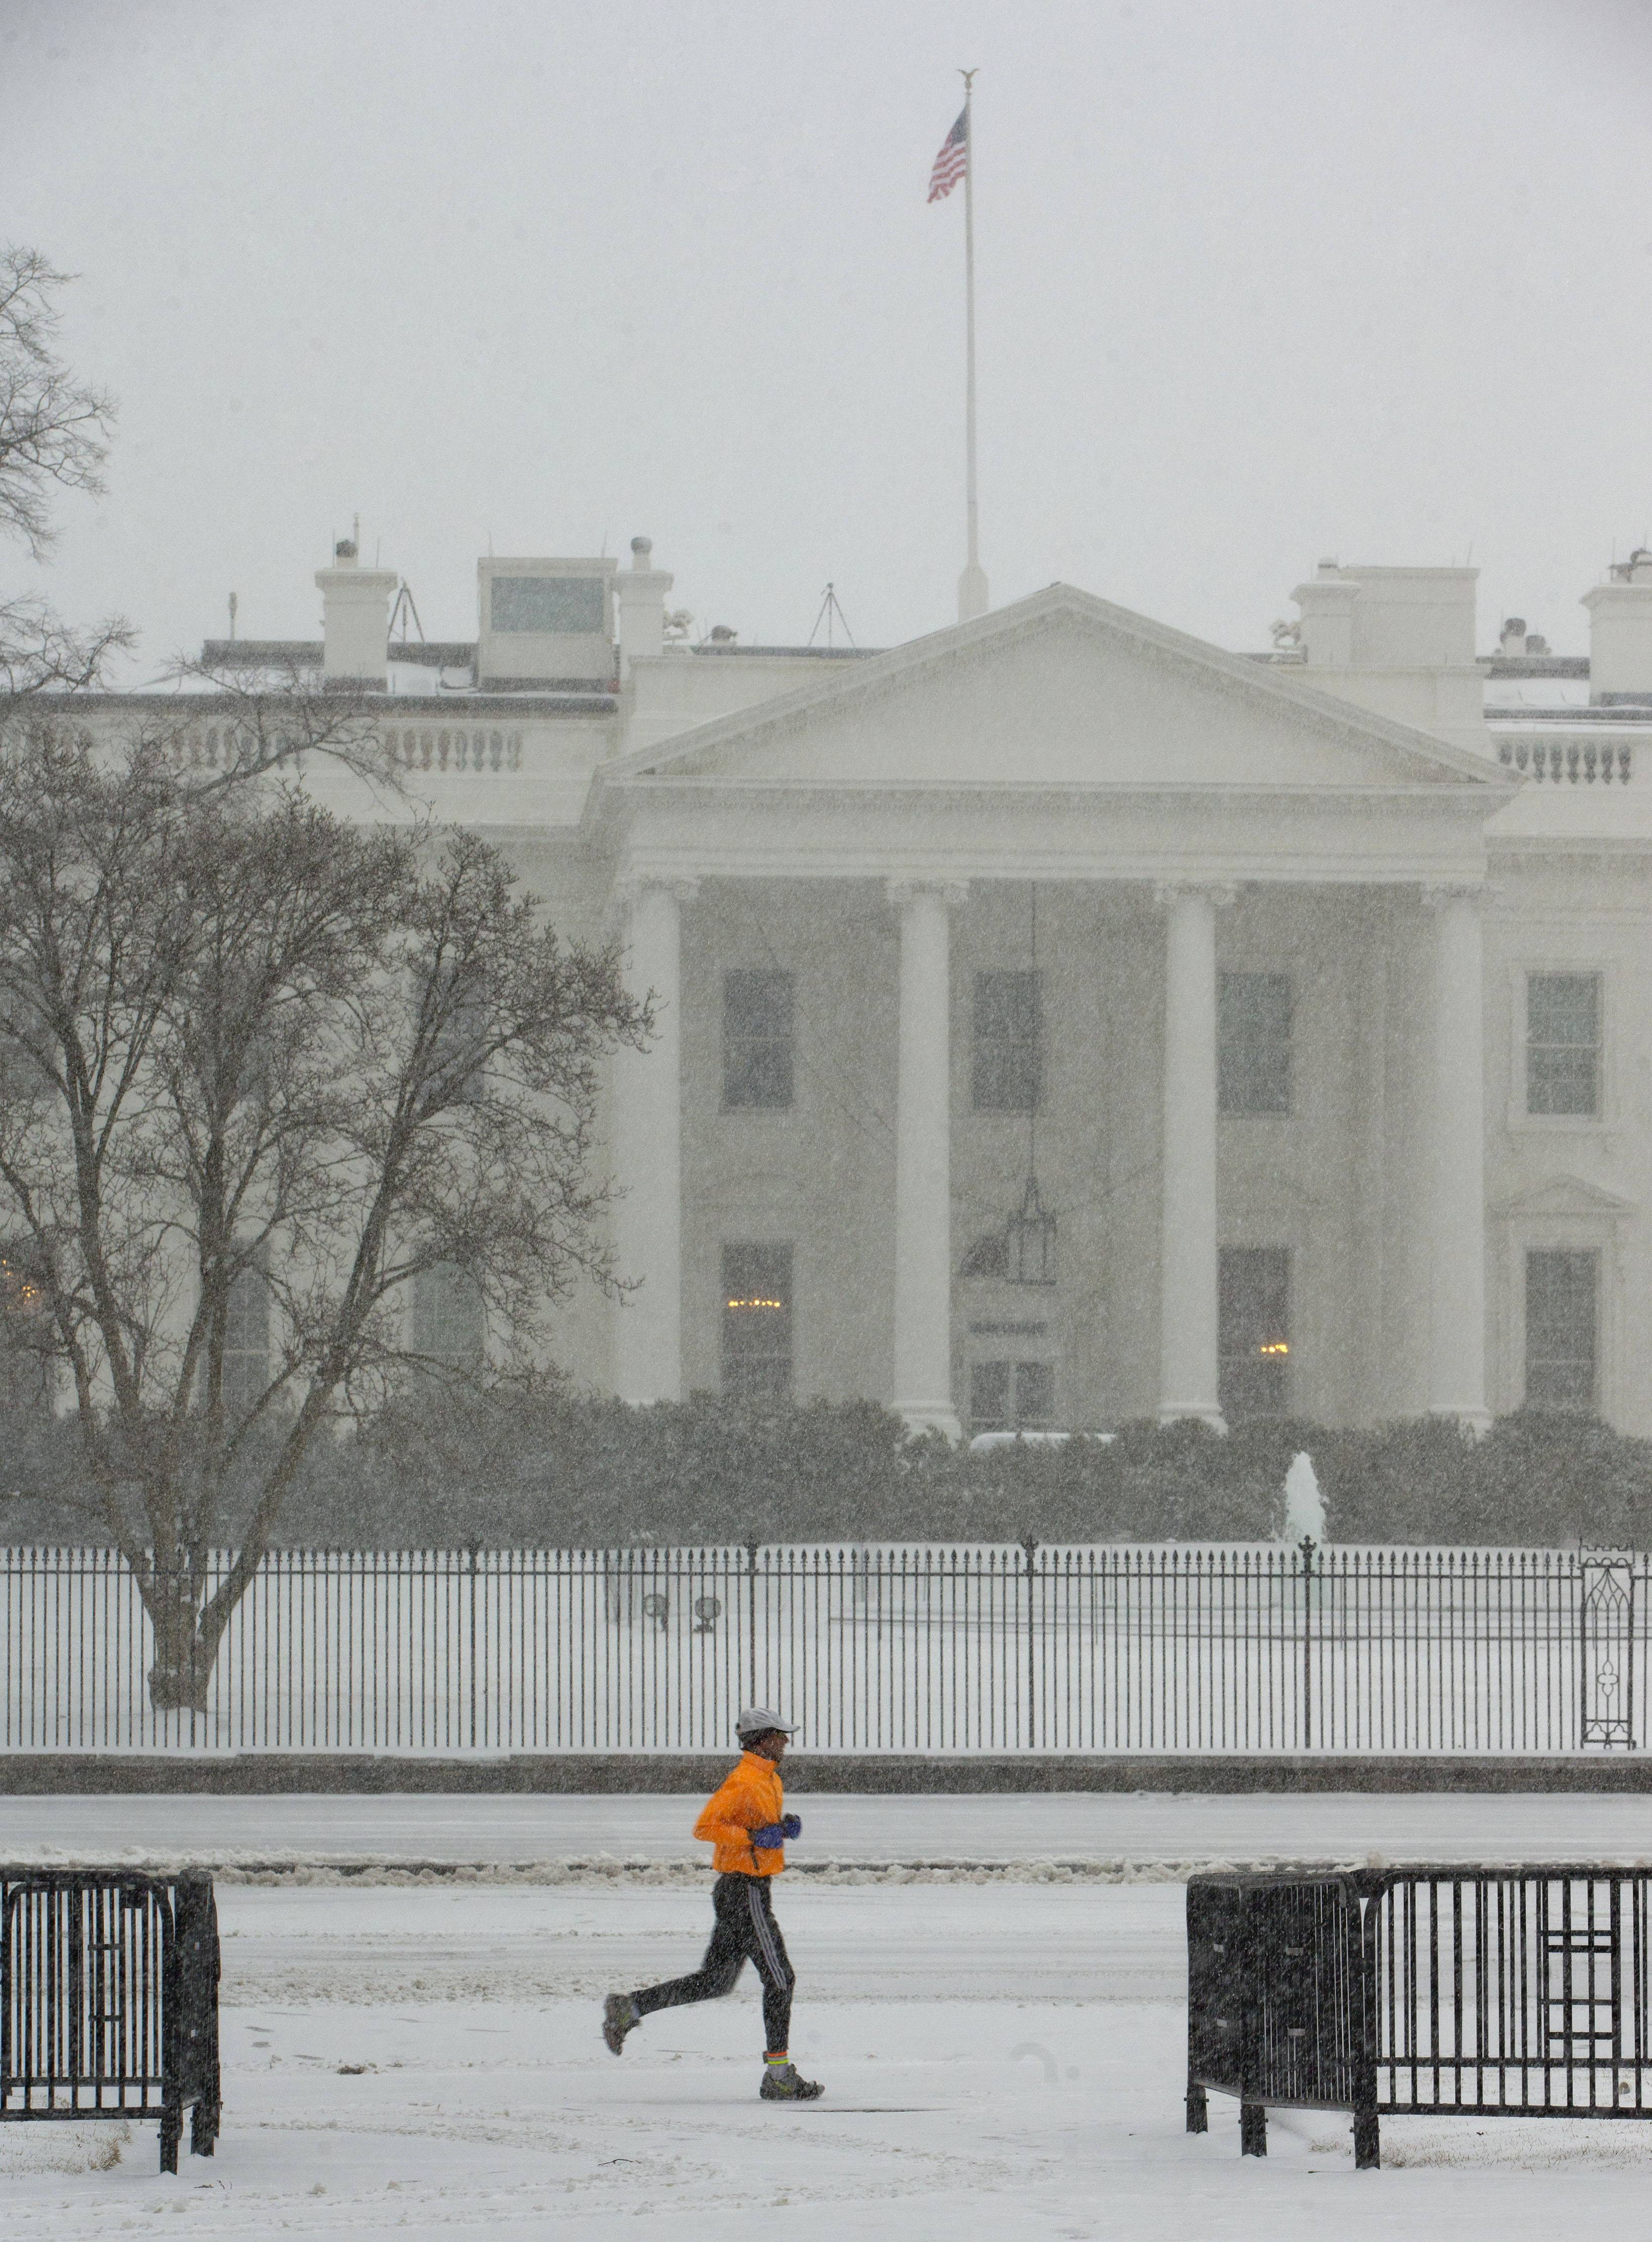 A jogger is seen Monday in Lafayette Park in front of the White House in Washington. The National Weather Service has issued a Winter Storm Warning for the greater Washington Metropolitan region, prompting area schools and the federal government to close for the wintry weather.